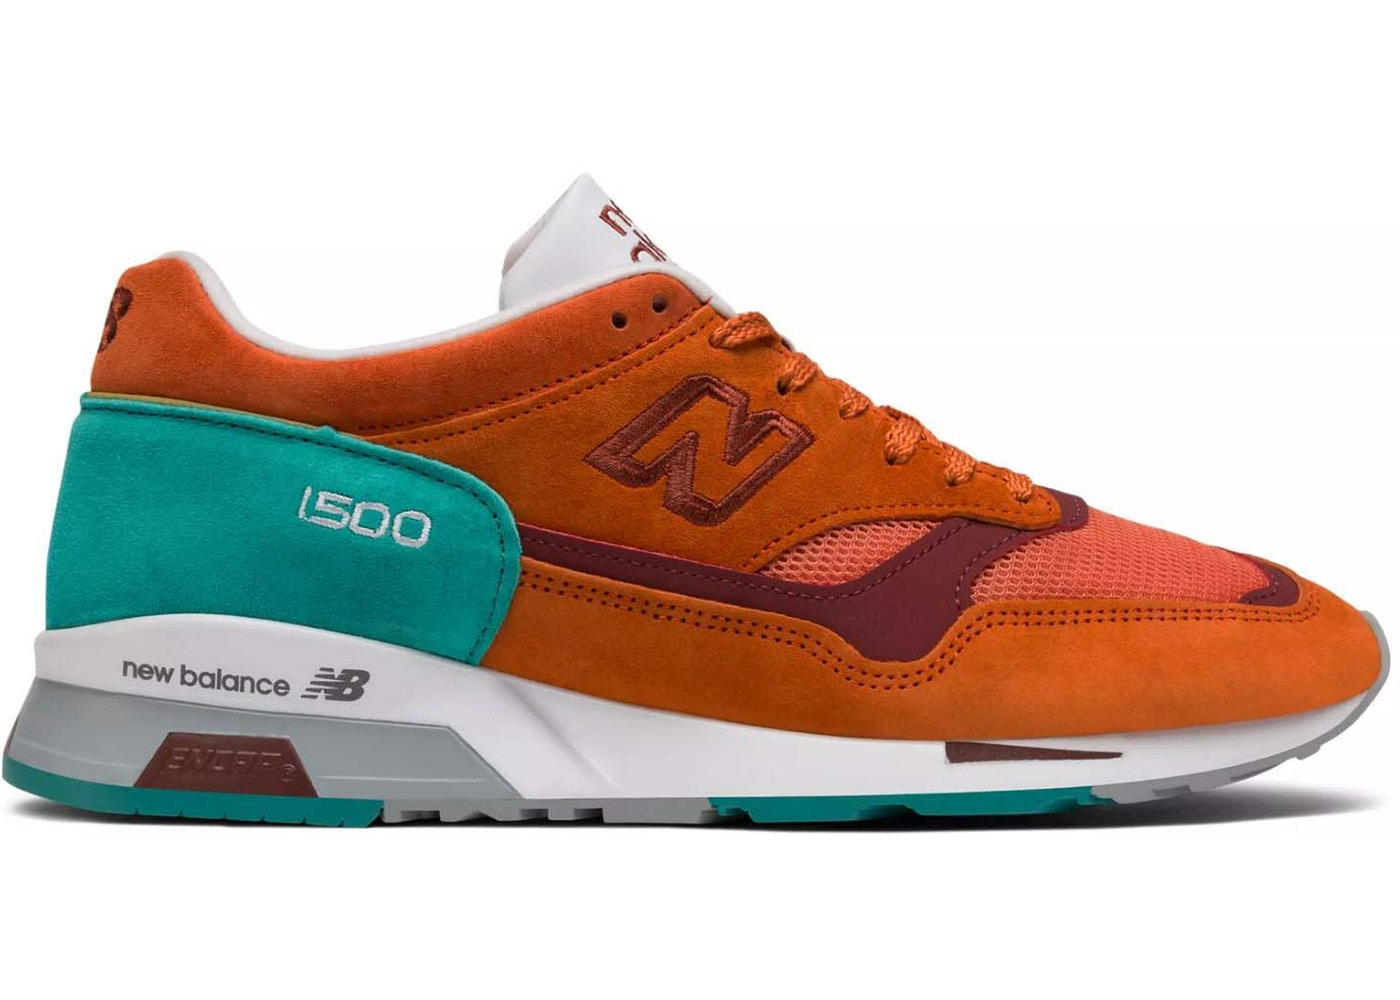 best sneakers d102f 49365 New Balance 1500 Coastal Cuisine Lobster